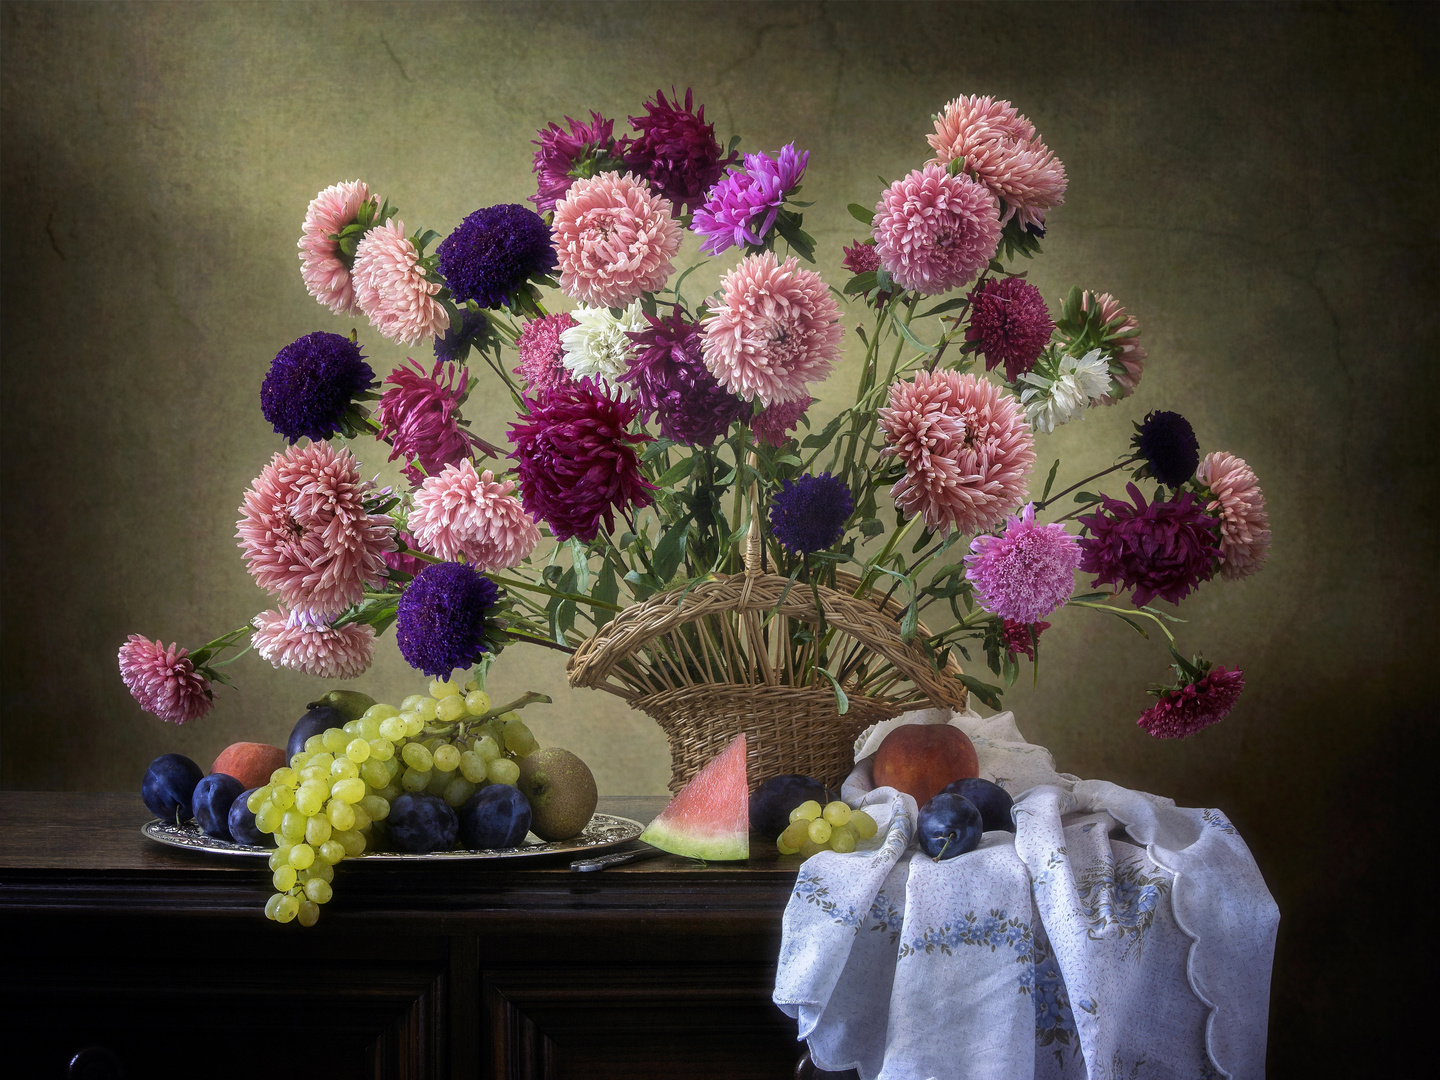 Still life with basket of aster flowers